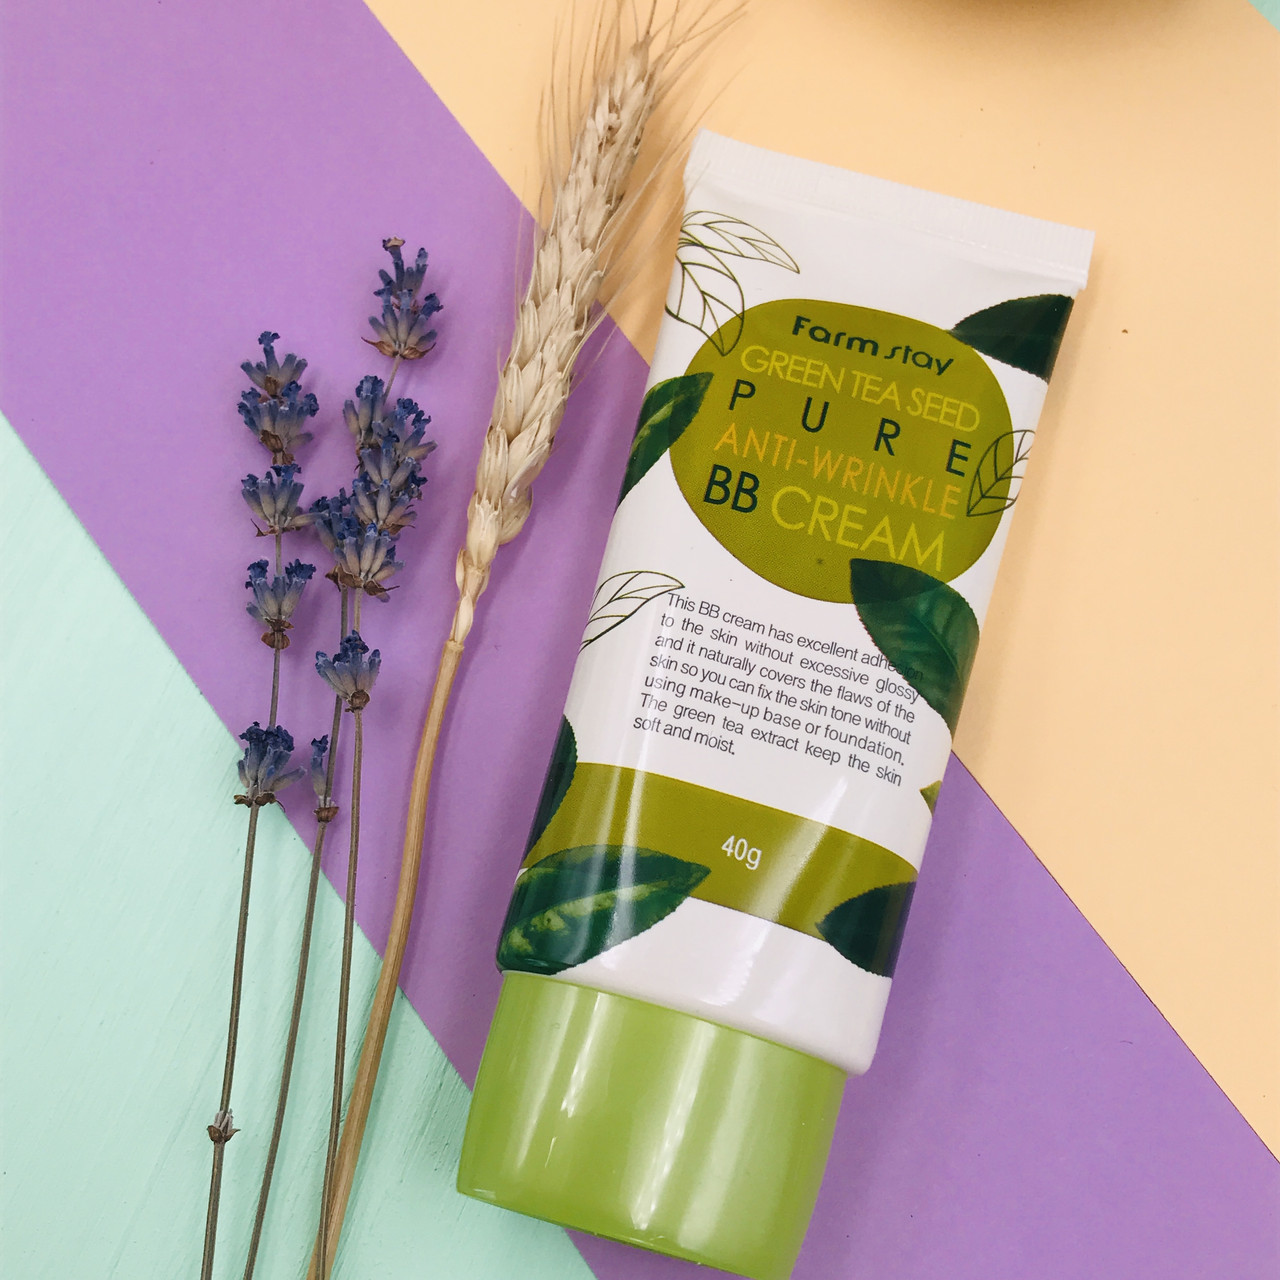 FARM STAY антивозрастной BB крем с семенами зеленого чая Green Tea Seed Pure Anti Wrinkle BB Cream